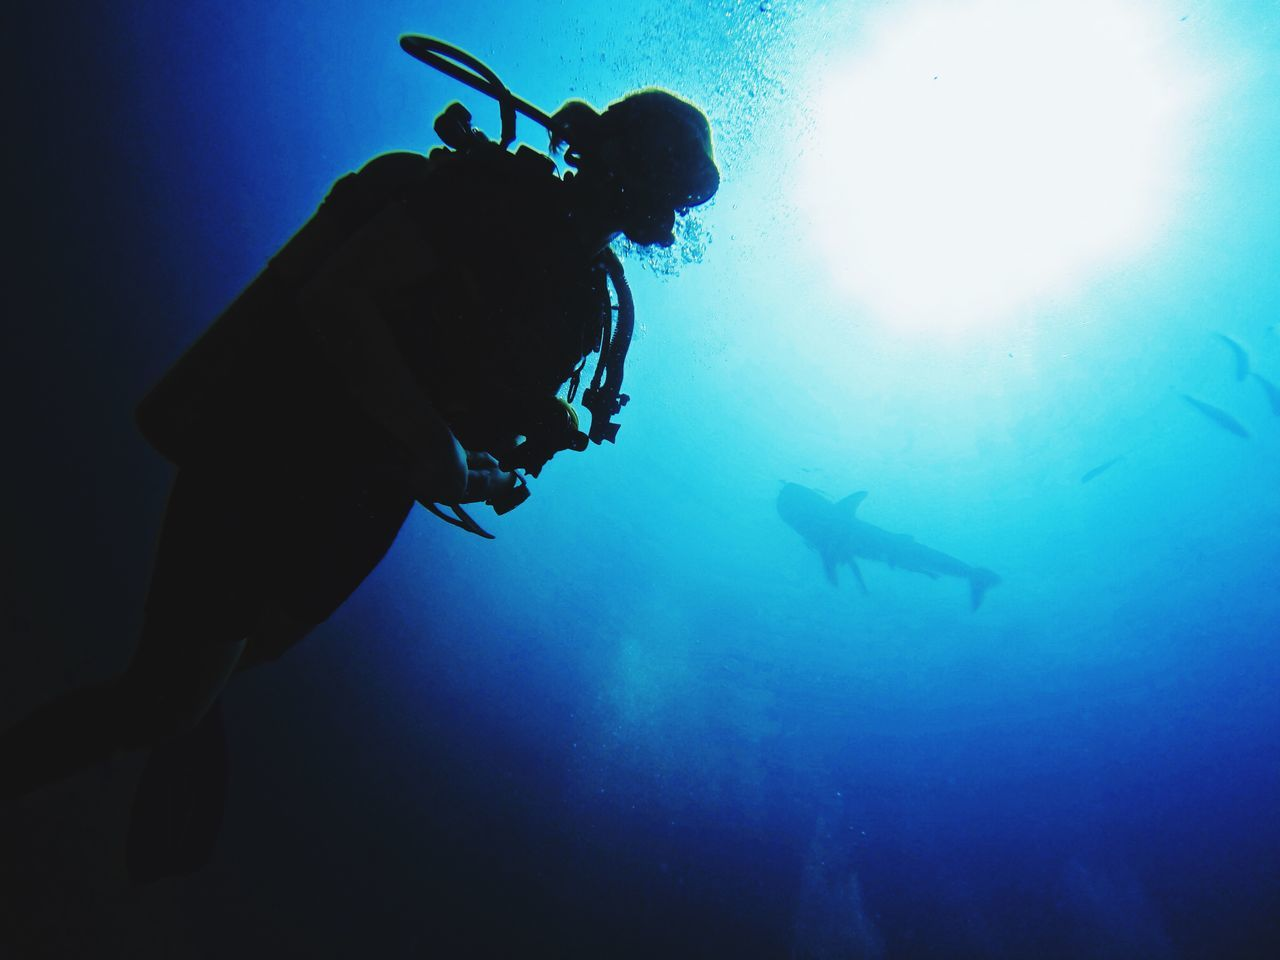 Diving with whale sharks, Koh Tachai, Thailand Diver Taucher Whale Shark Scuba Diving SCUBA Scubadiving Adventure Adventure Buddies Adventures Adventure Time Underwater Underwater Photography Underwater World EyeEm Best Shots Eye4photography  Amazing Amazing View Amazing Place